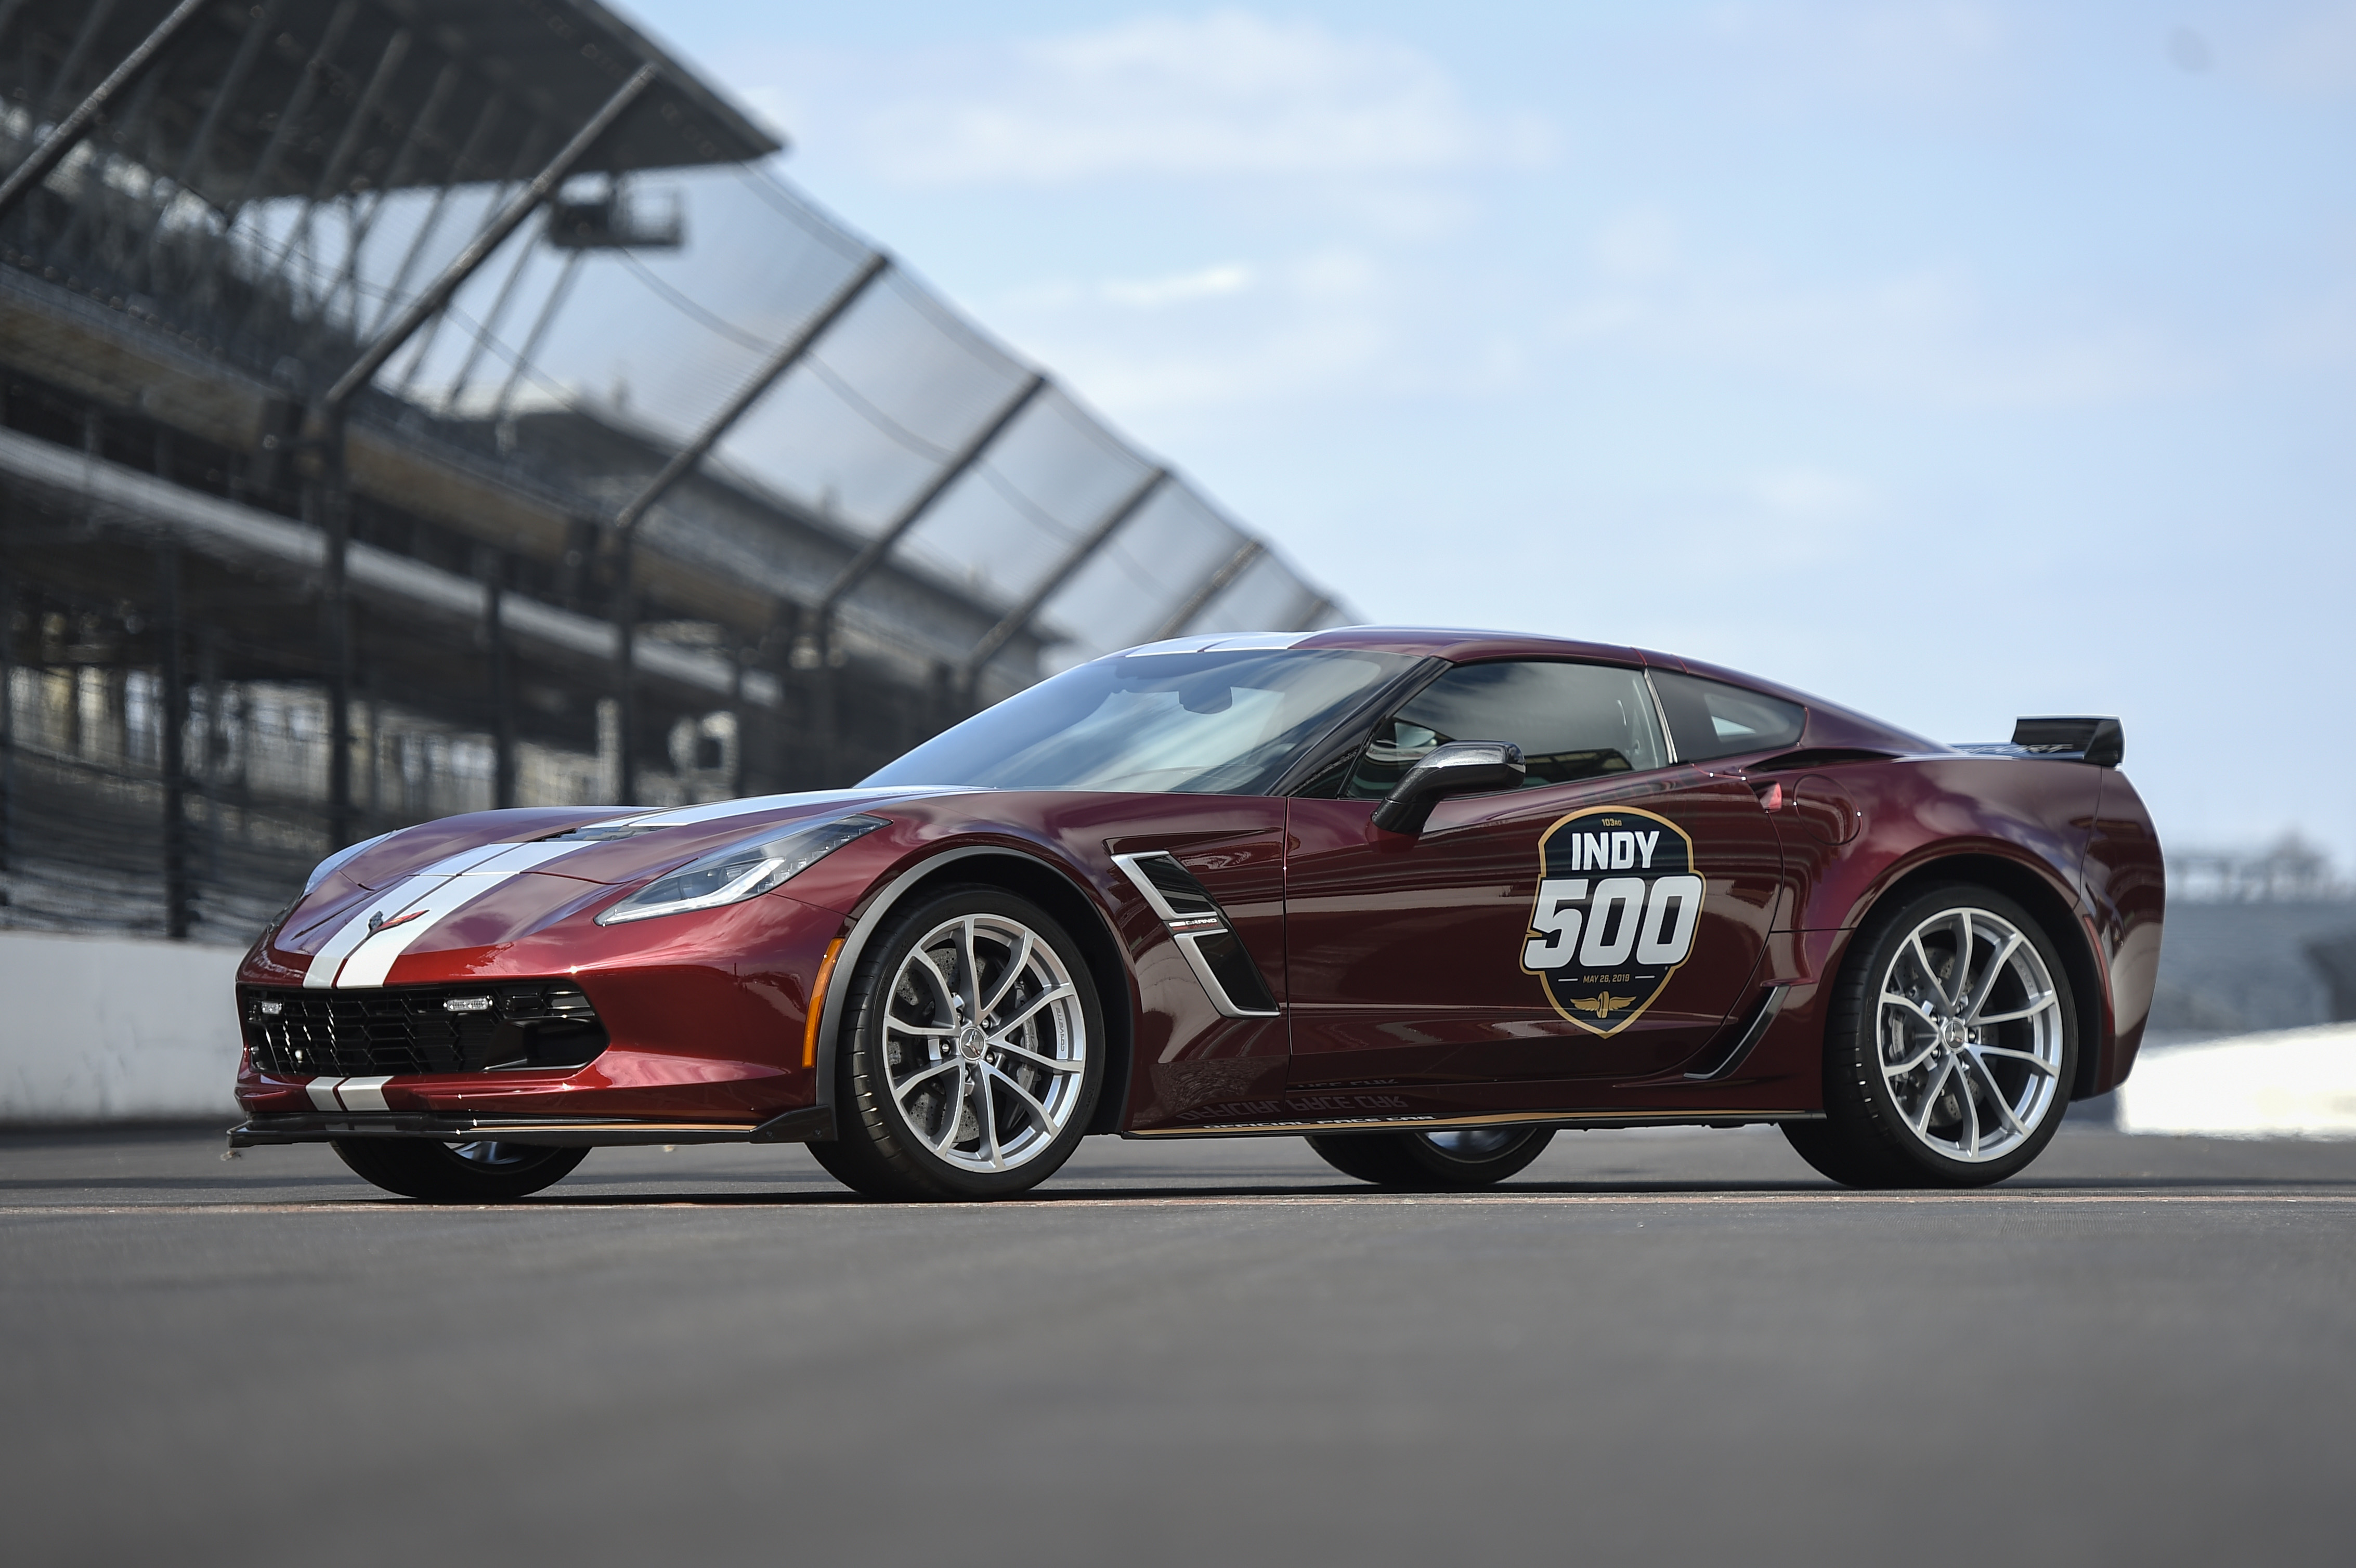 Indy 500 Pace Car 2019 Corvette Grand Sport